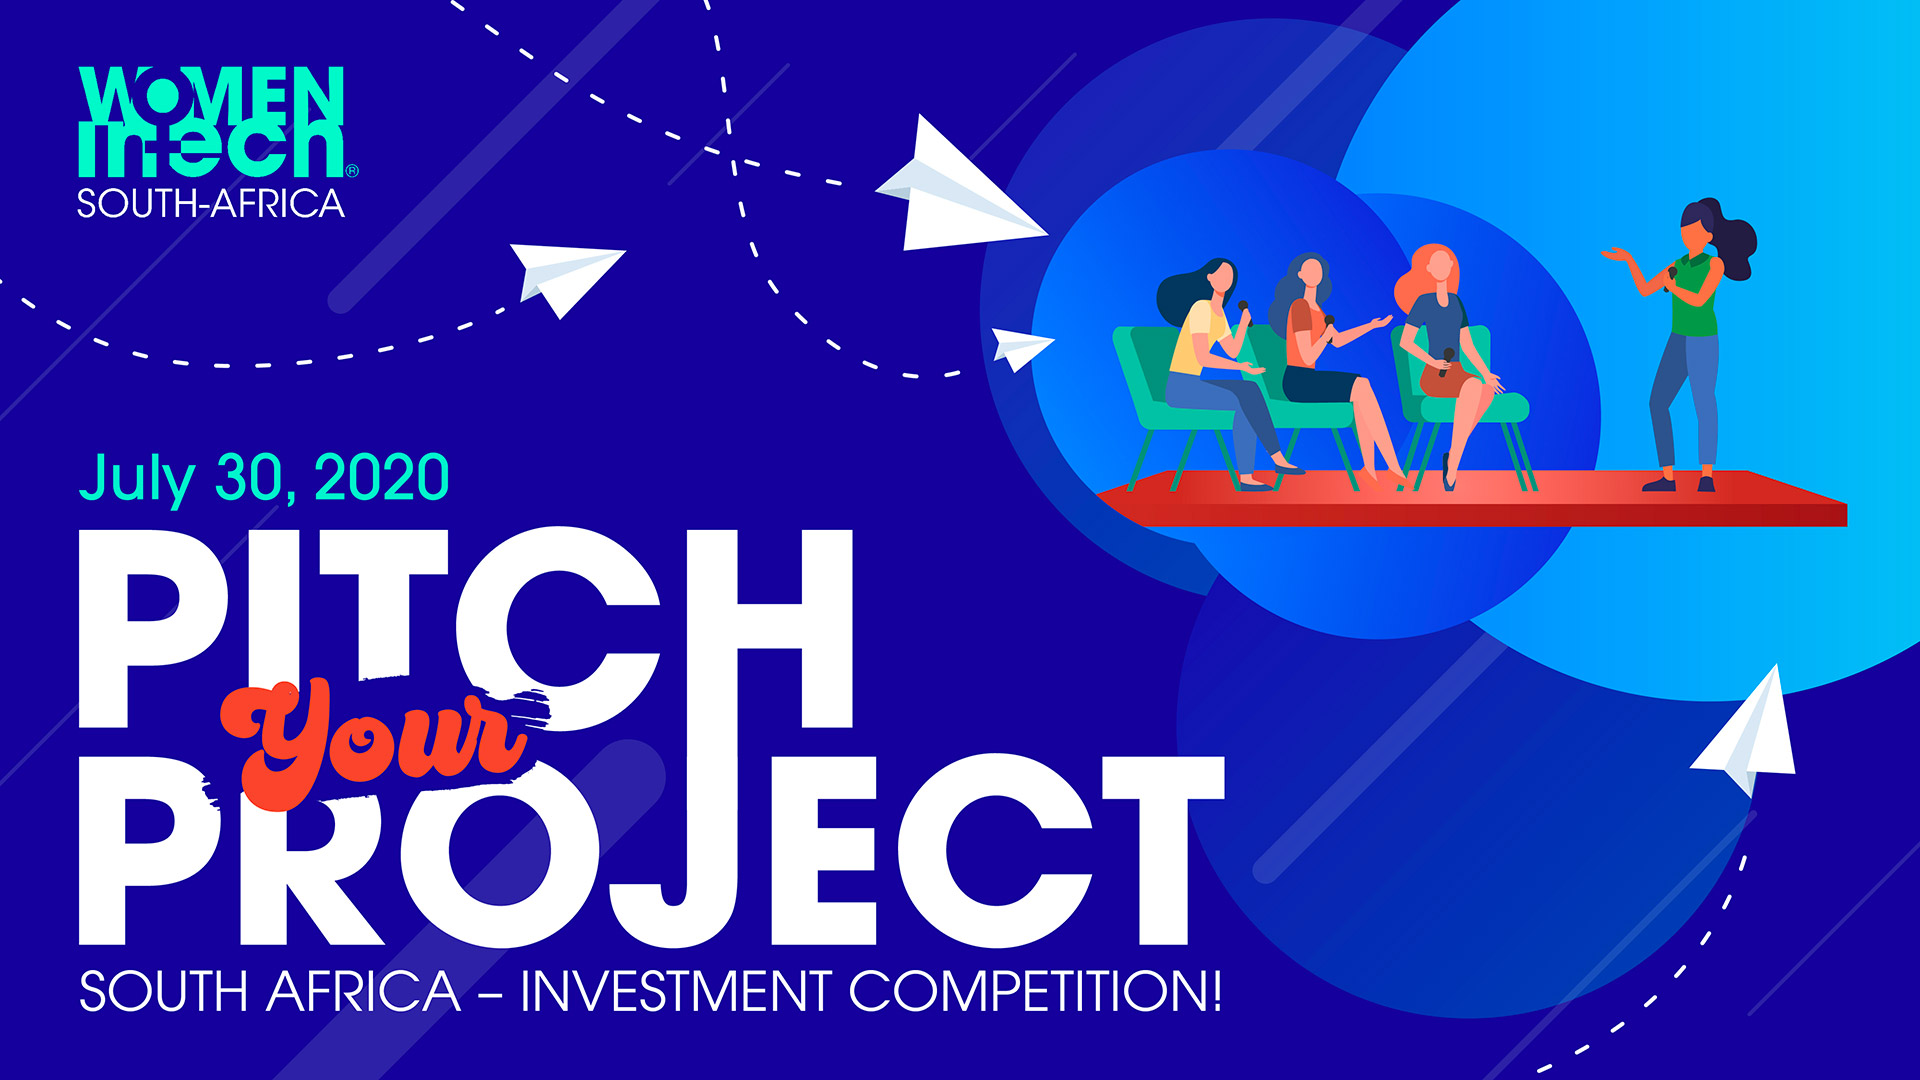 Pitch your Project South Africa – Investment competition!